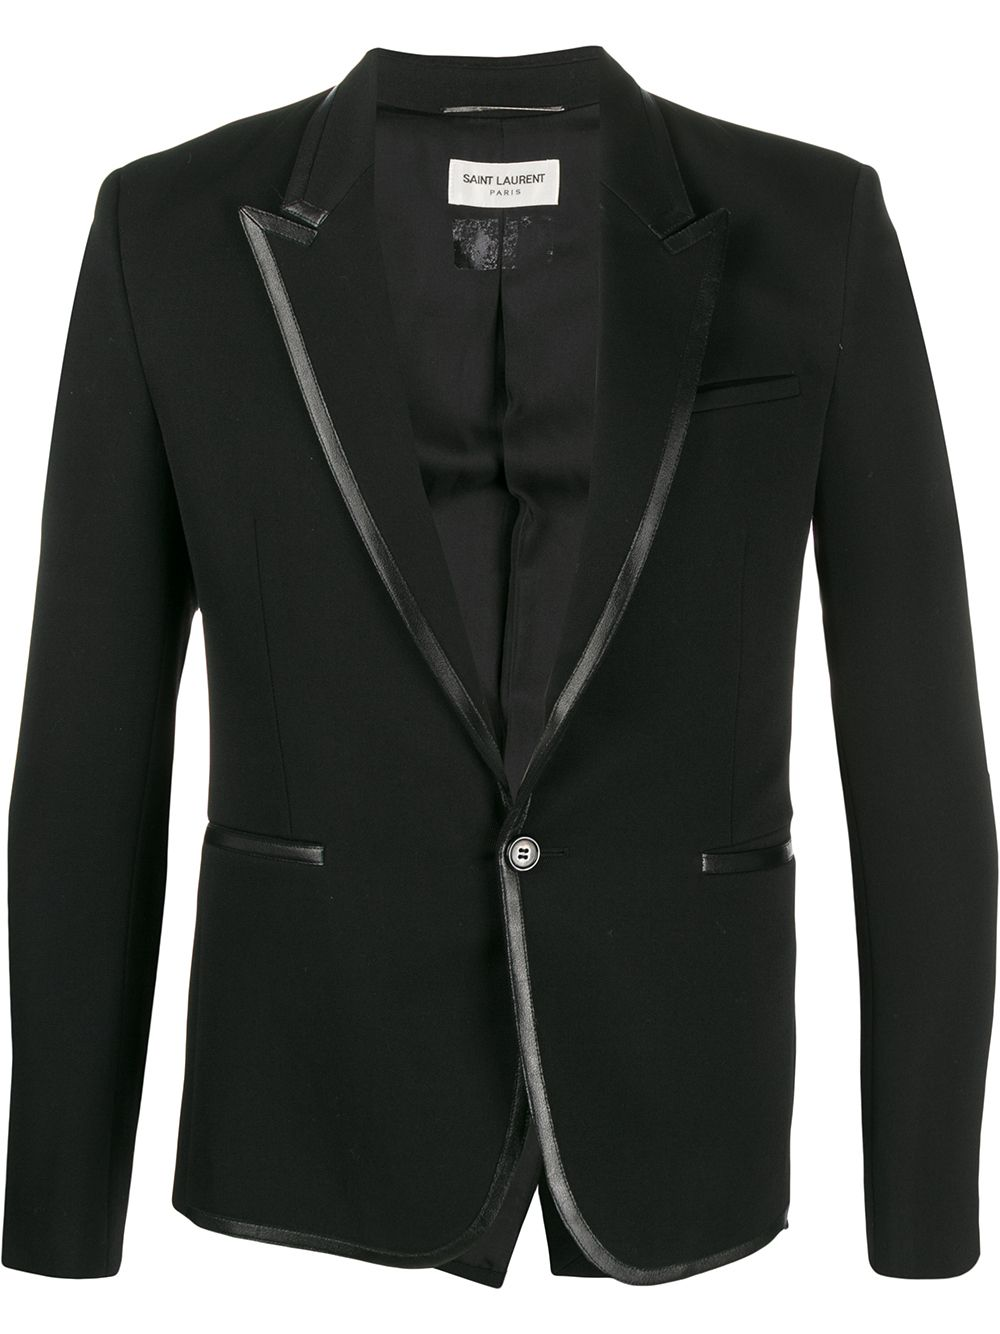 Saint Laurent contrast trim blazer - Black von Saint Laurent